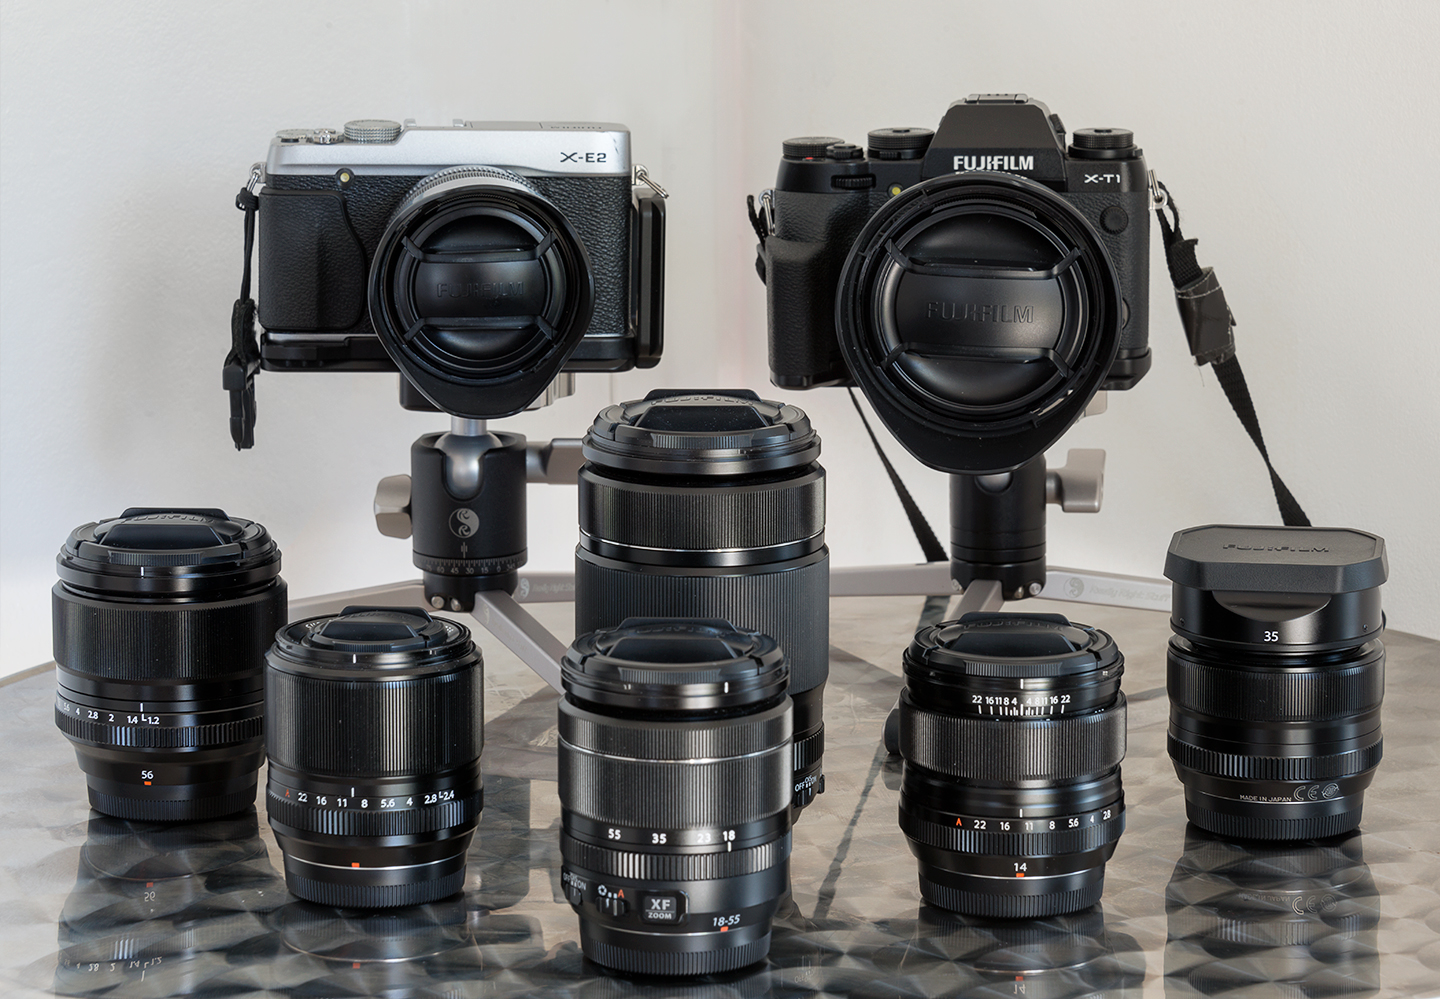 Fujifilm-Cameras-and-lenses-X-T1-E2-1440